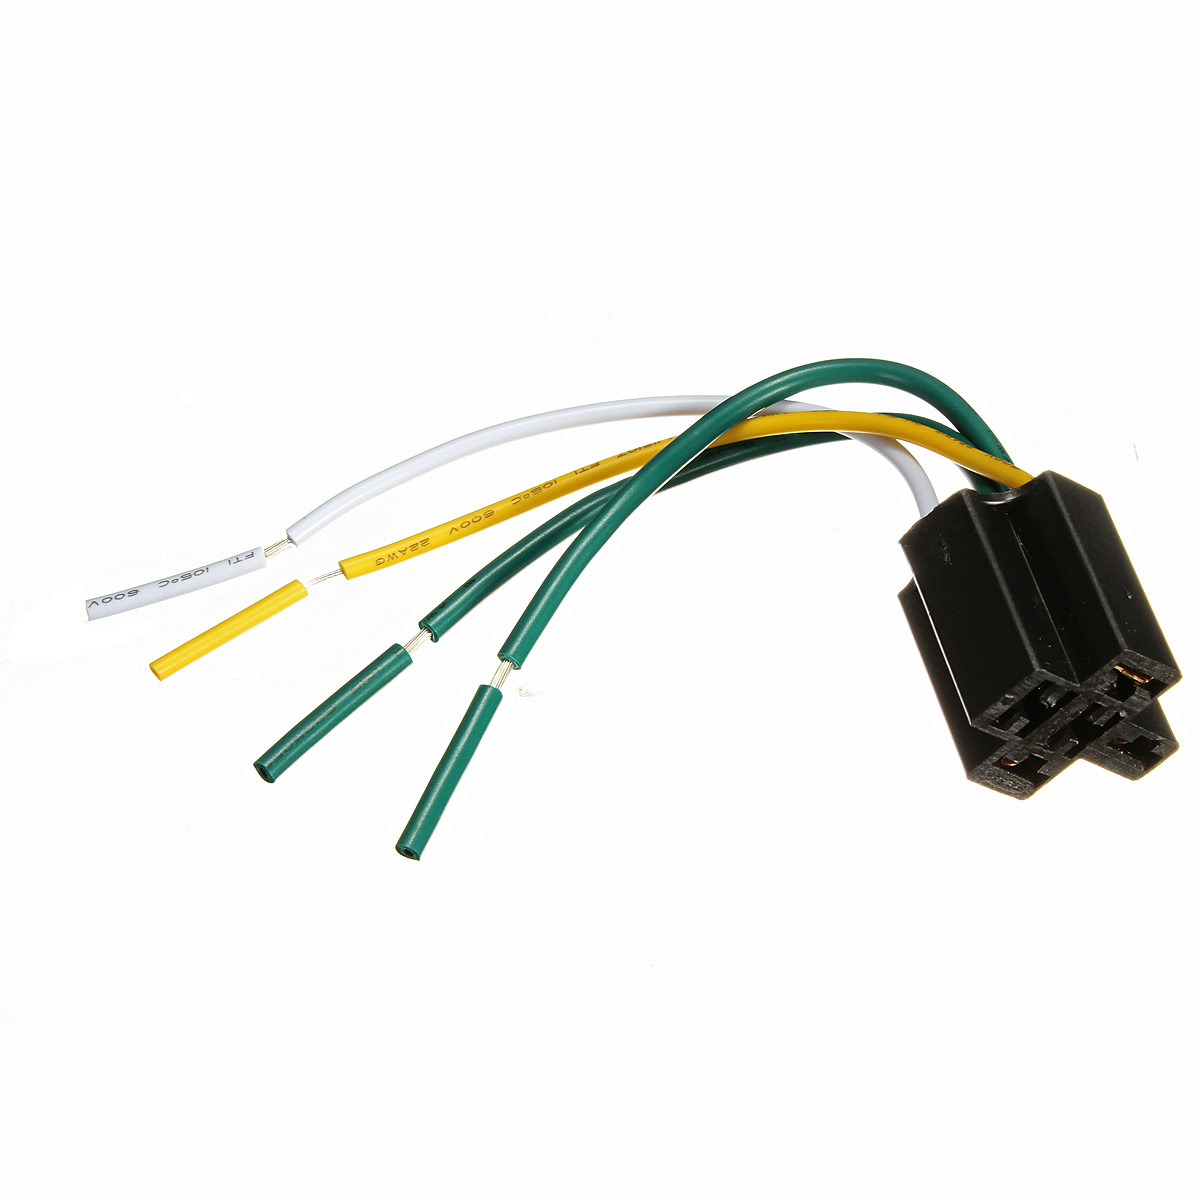 wiring diagram for 2007 chrysler town amp country 1pc 12cm car dc 12v volt 40a automotive 4 pin 4 wire relay ... wiring diagram for 4 pin 30 amp 12 volt